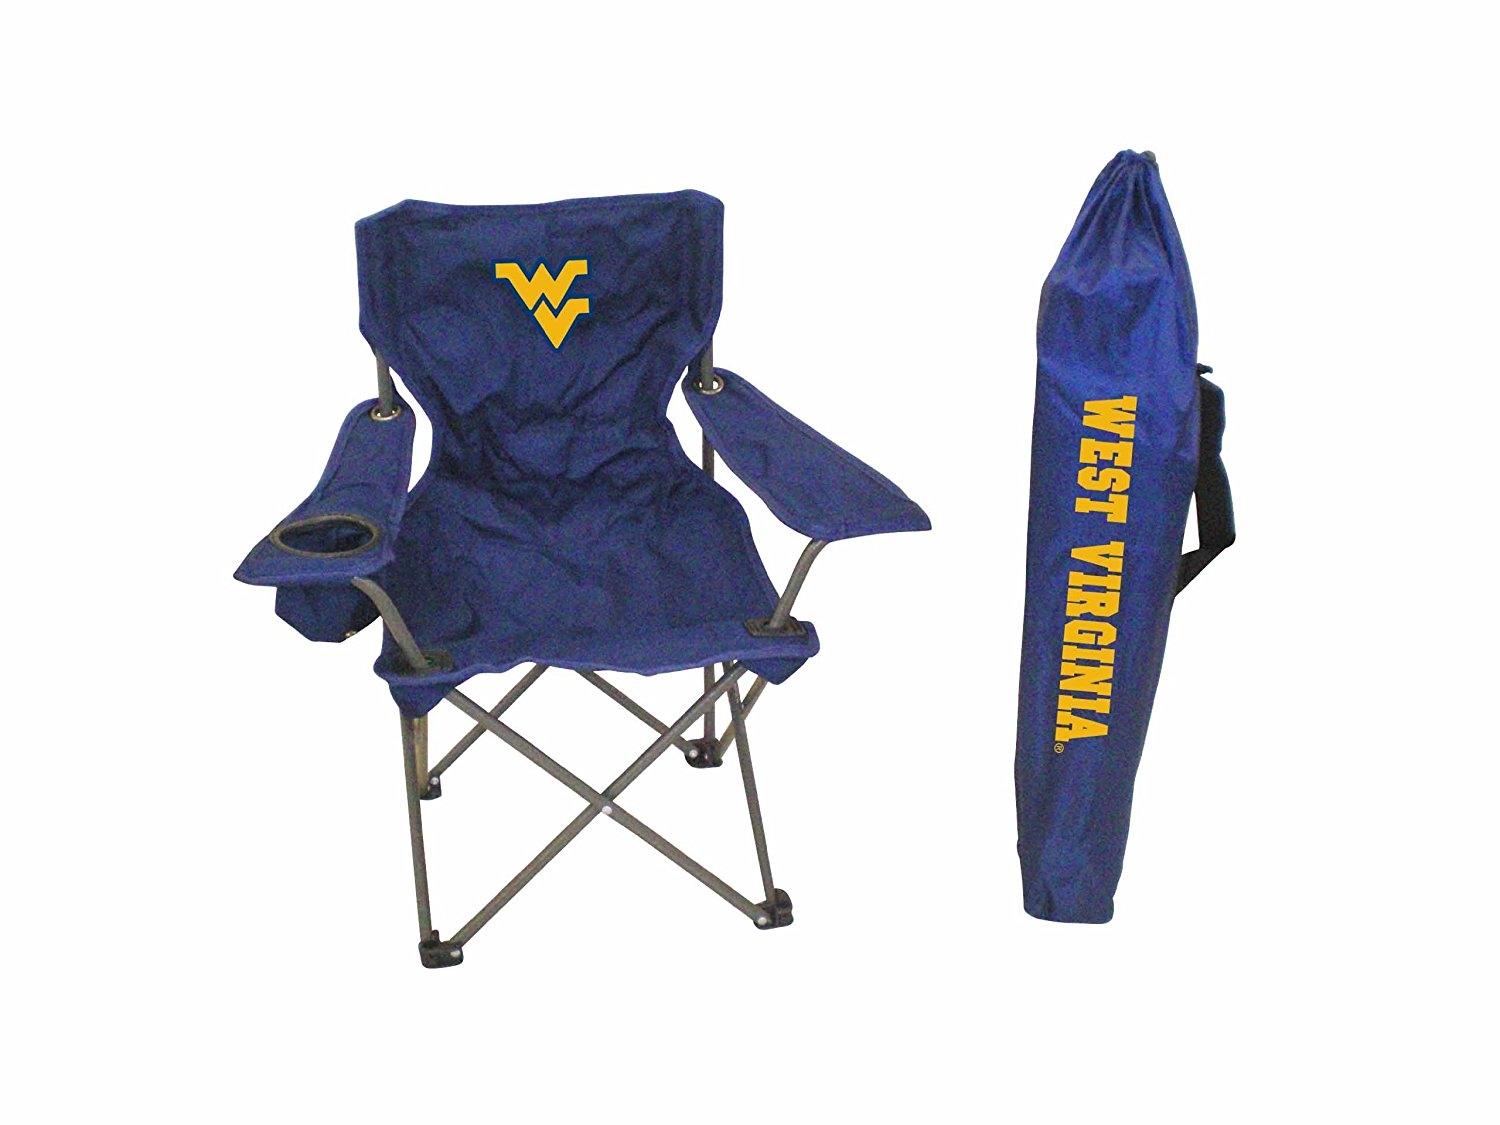 folding junior chair chairs sitting area crossword rivalry ncaa west virginia mountaineers youth